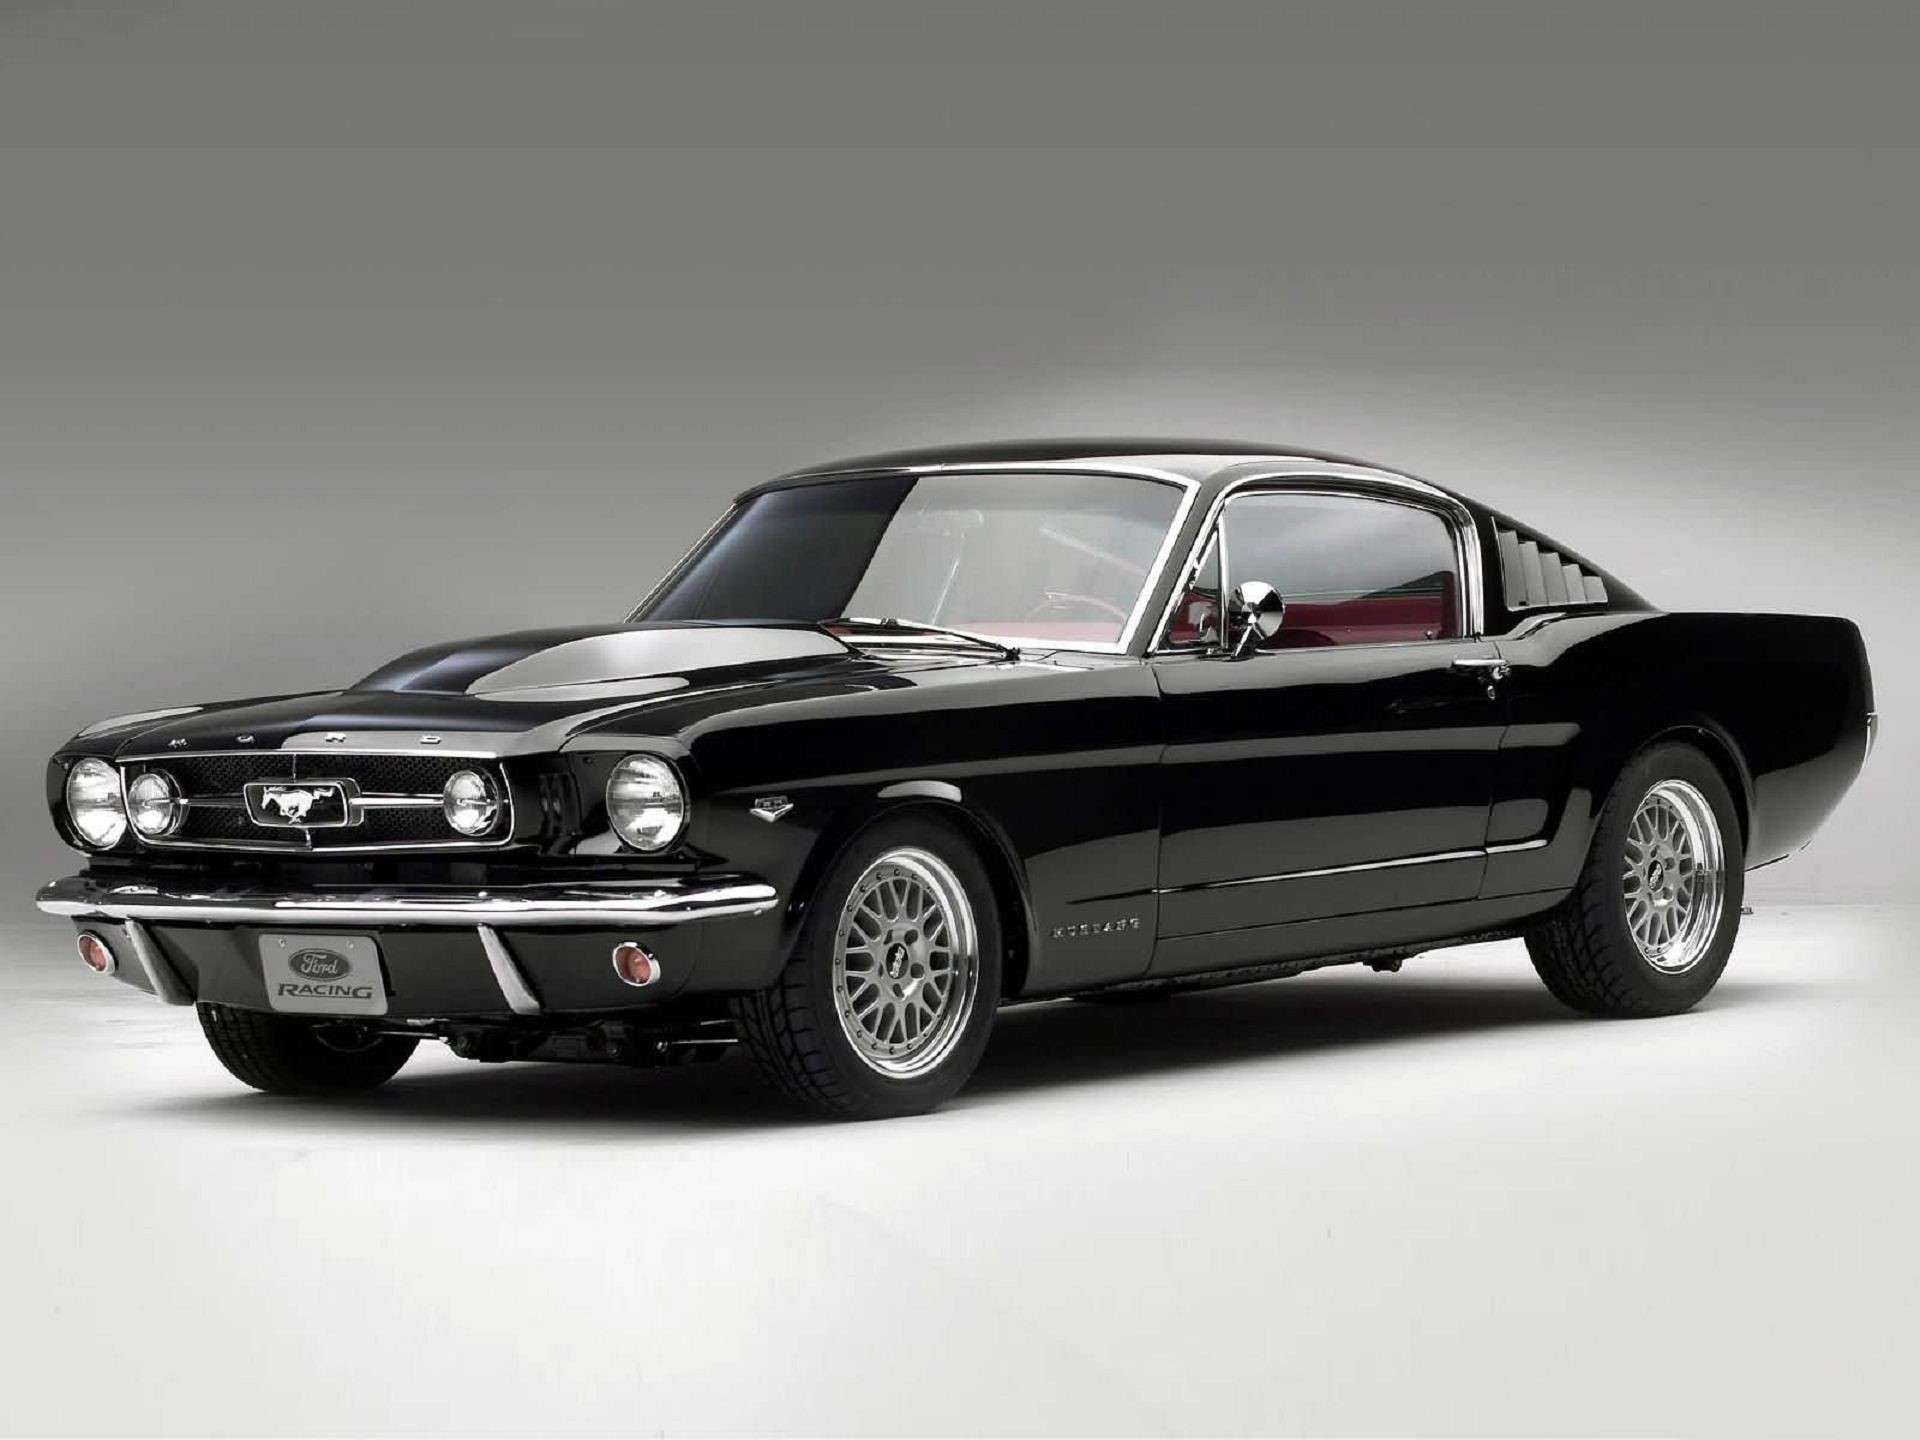 Ford Mustang Computer Wallpapers